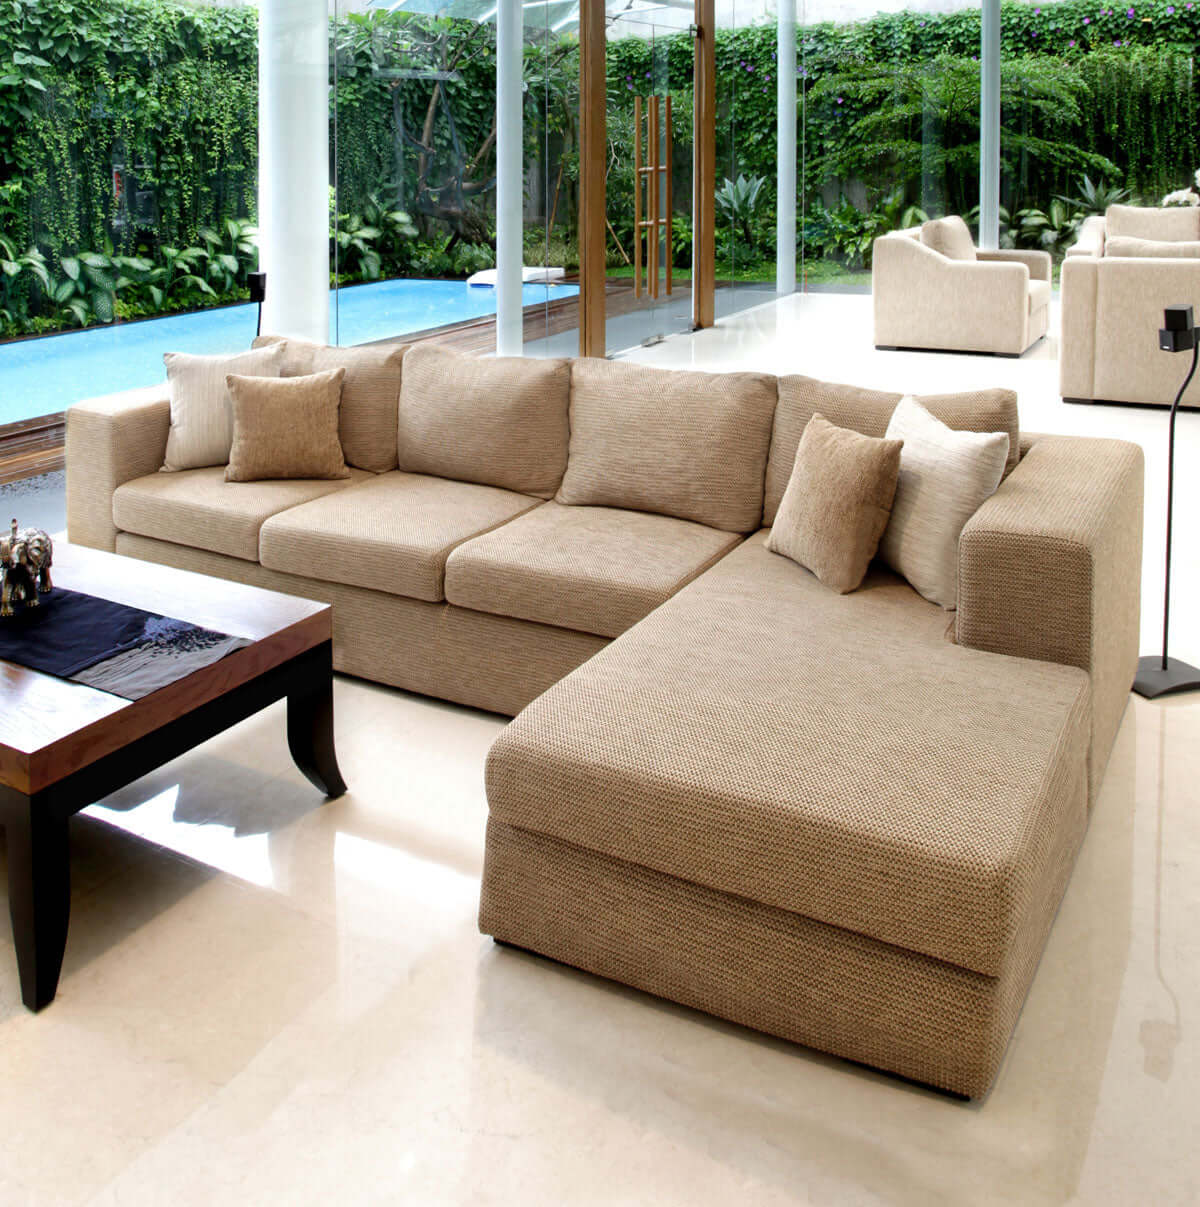 Sofa L Images Tribeca L Shape 3 Seat Sofa